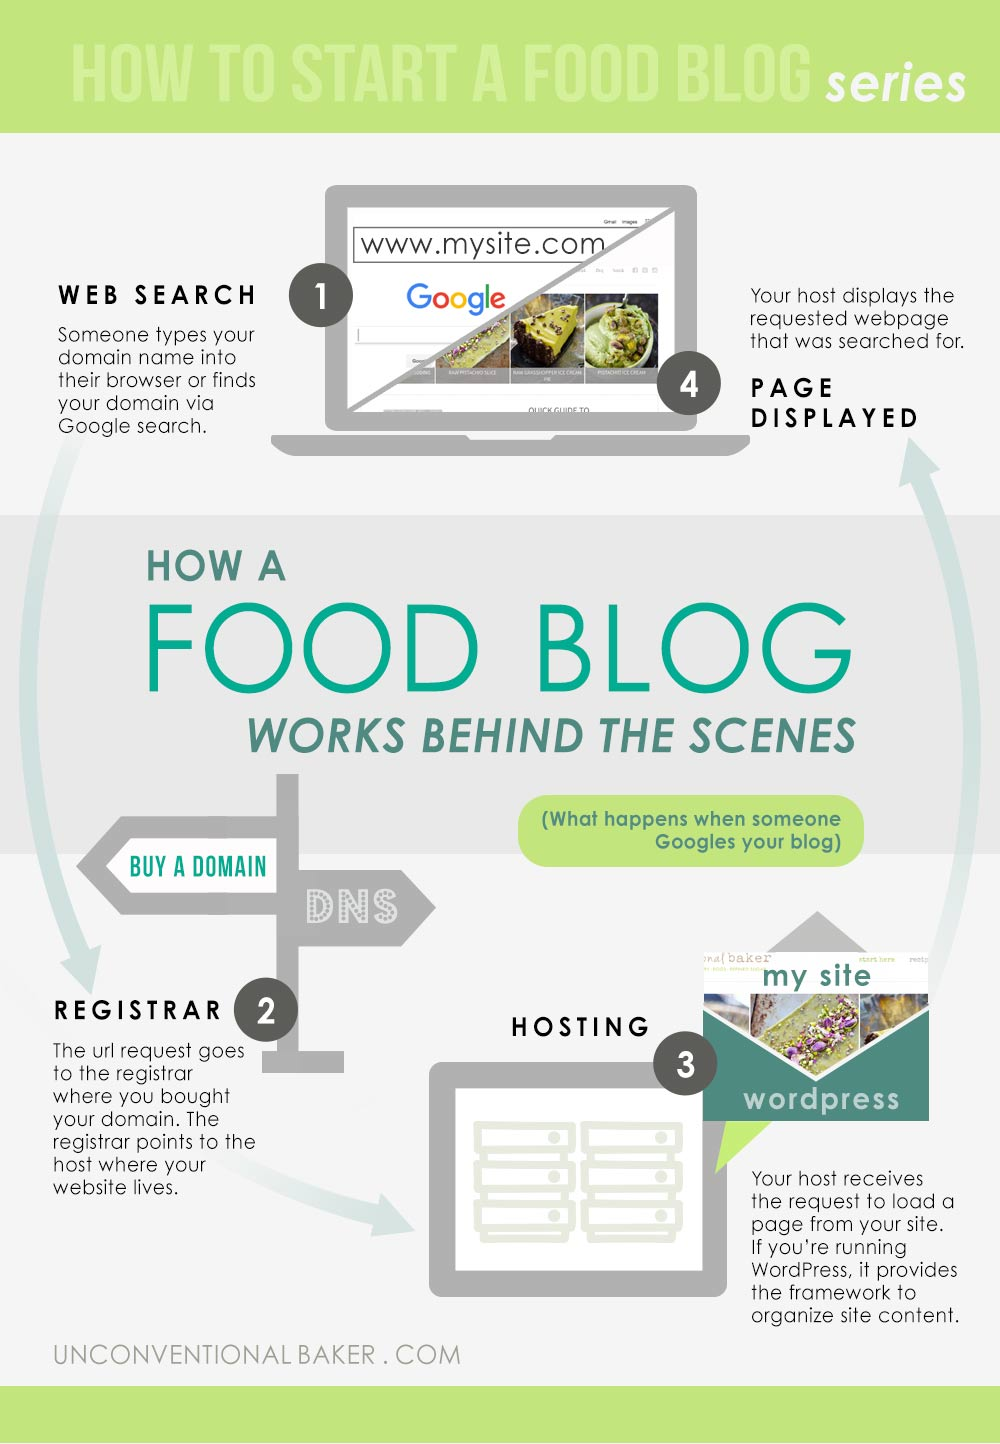 How a food blog works behind the scenes- understanding how your registrar, hosting, and wordpress work together to make your blog appear online